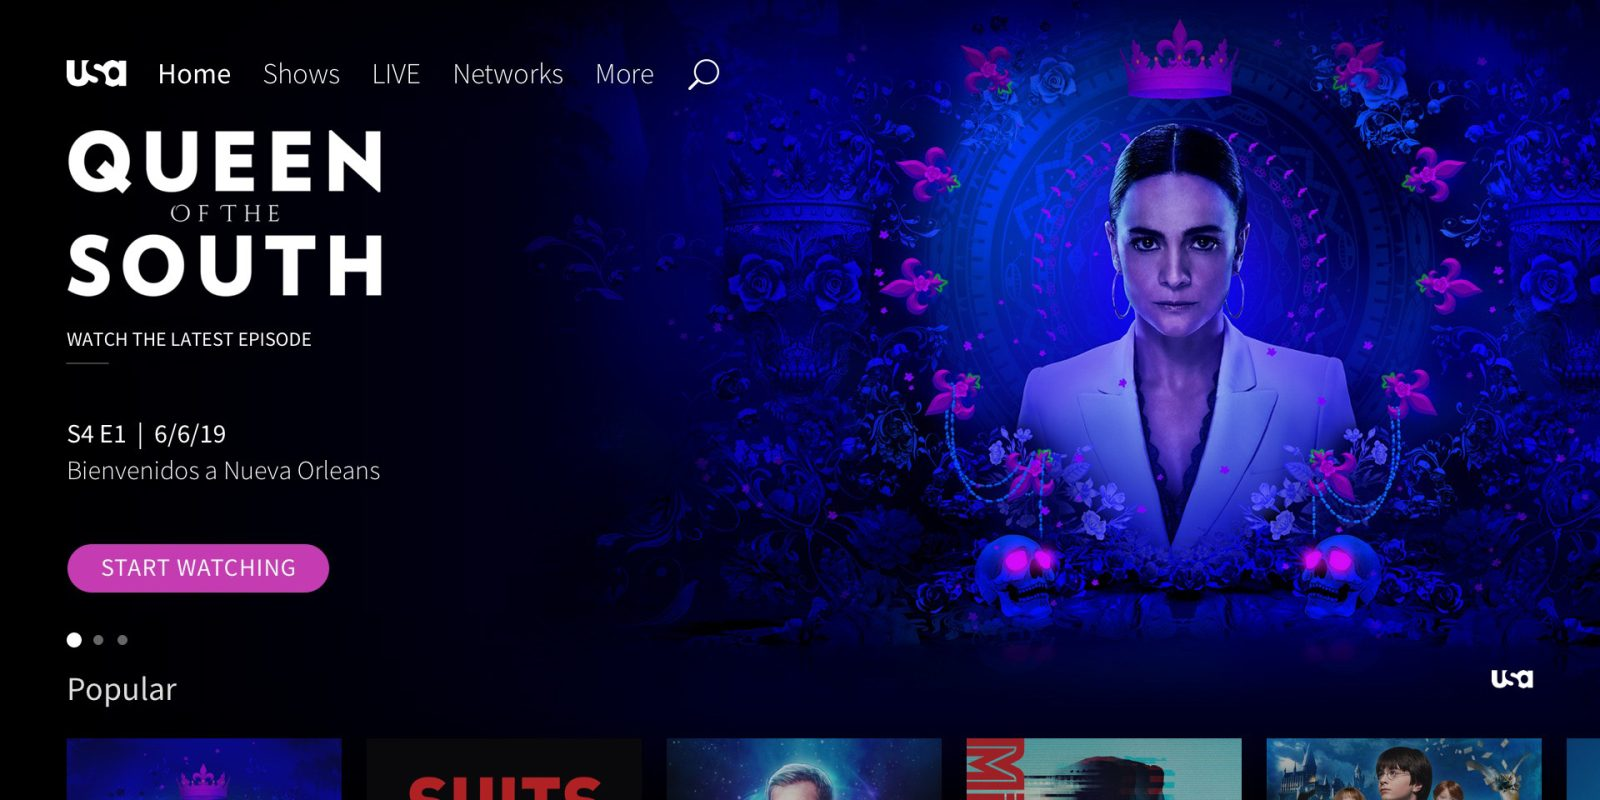 Android TV picks up apps for USA Network, SYFY, Bravo, and more from NBCUniversal